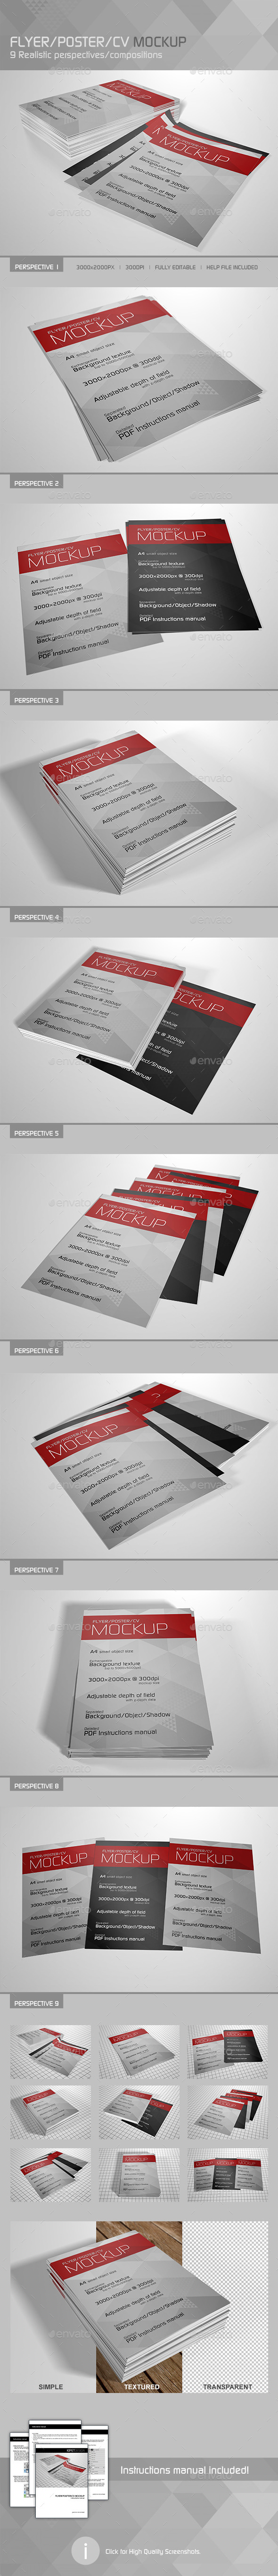 Realistic Flyer/Poster/CV Mockup 3 - Flyers Print